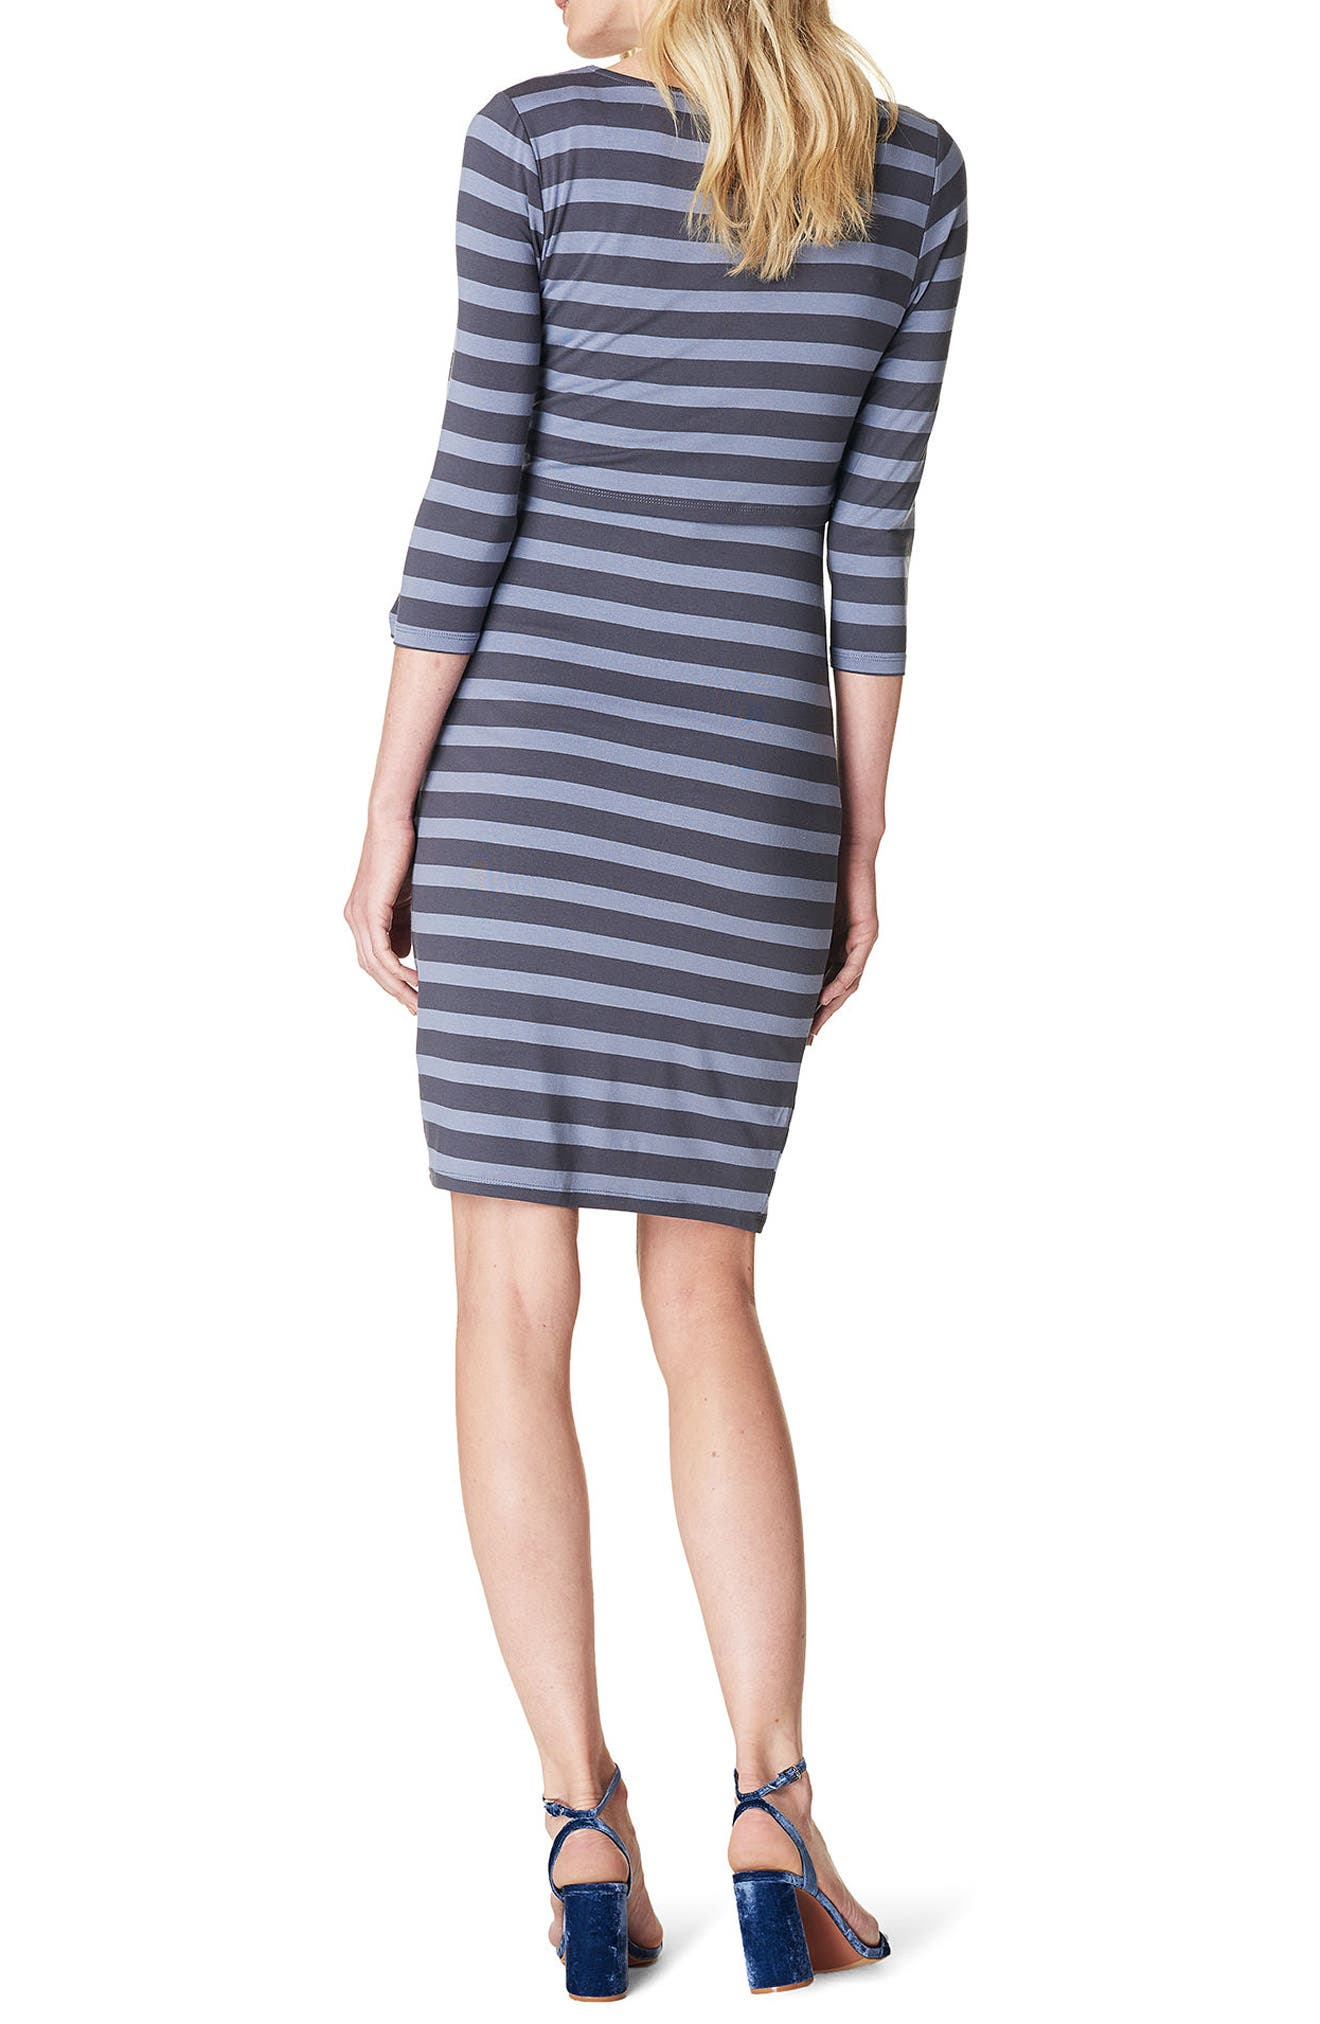 Aaike Maternity/Nursing Sheath Dress,                             Alternate thumbnail 2, color,                             Blue Strip